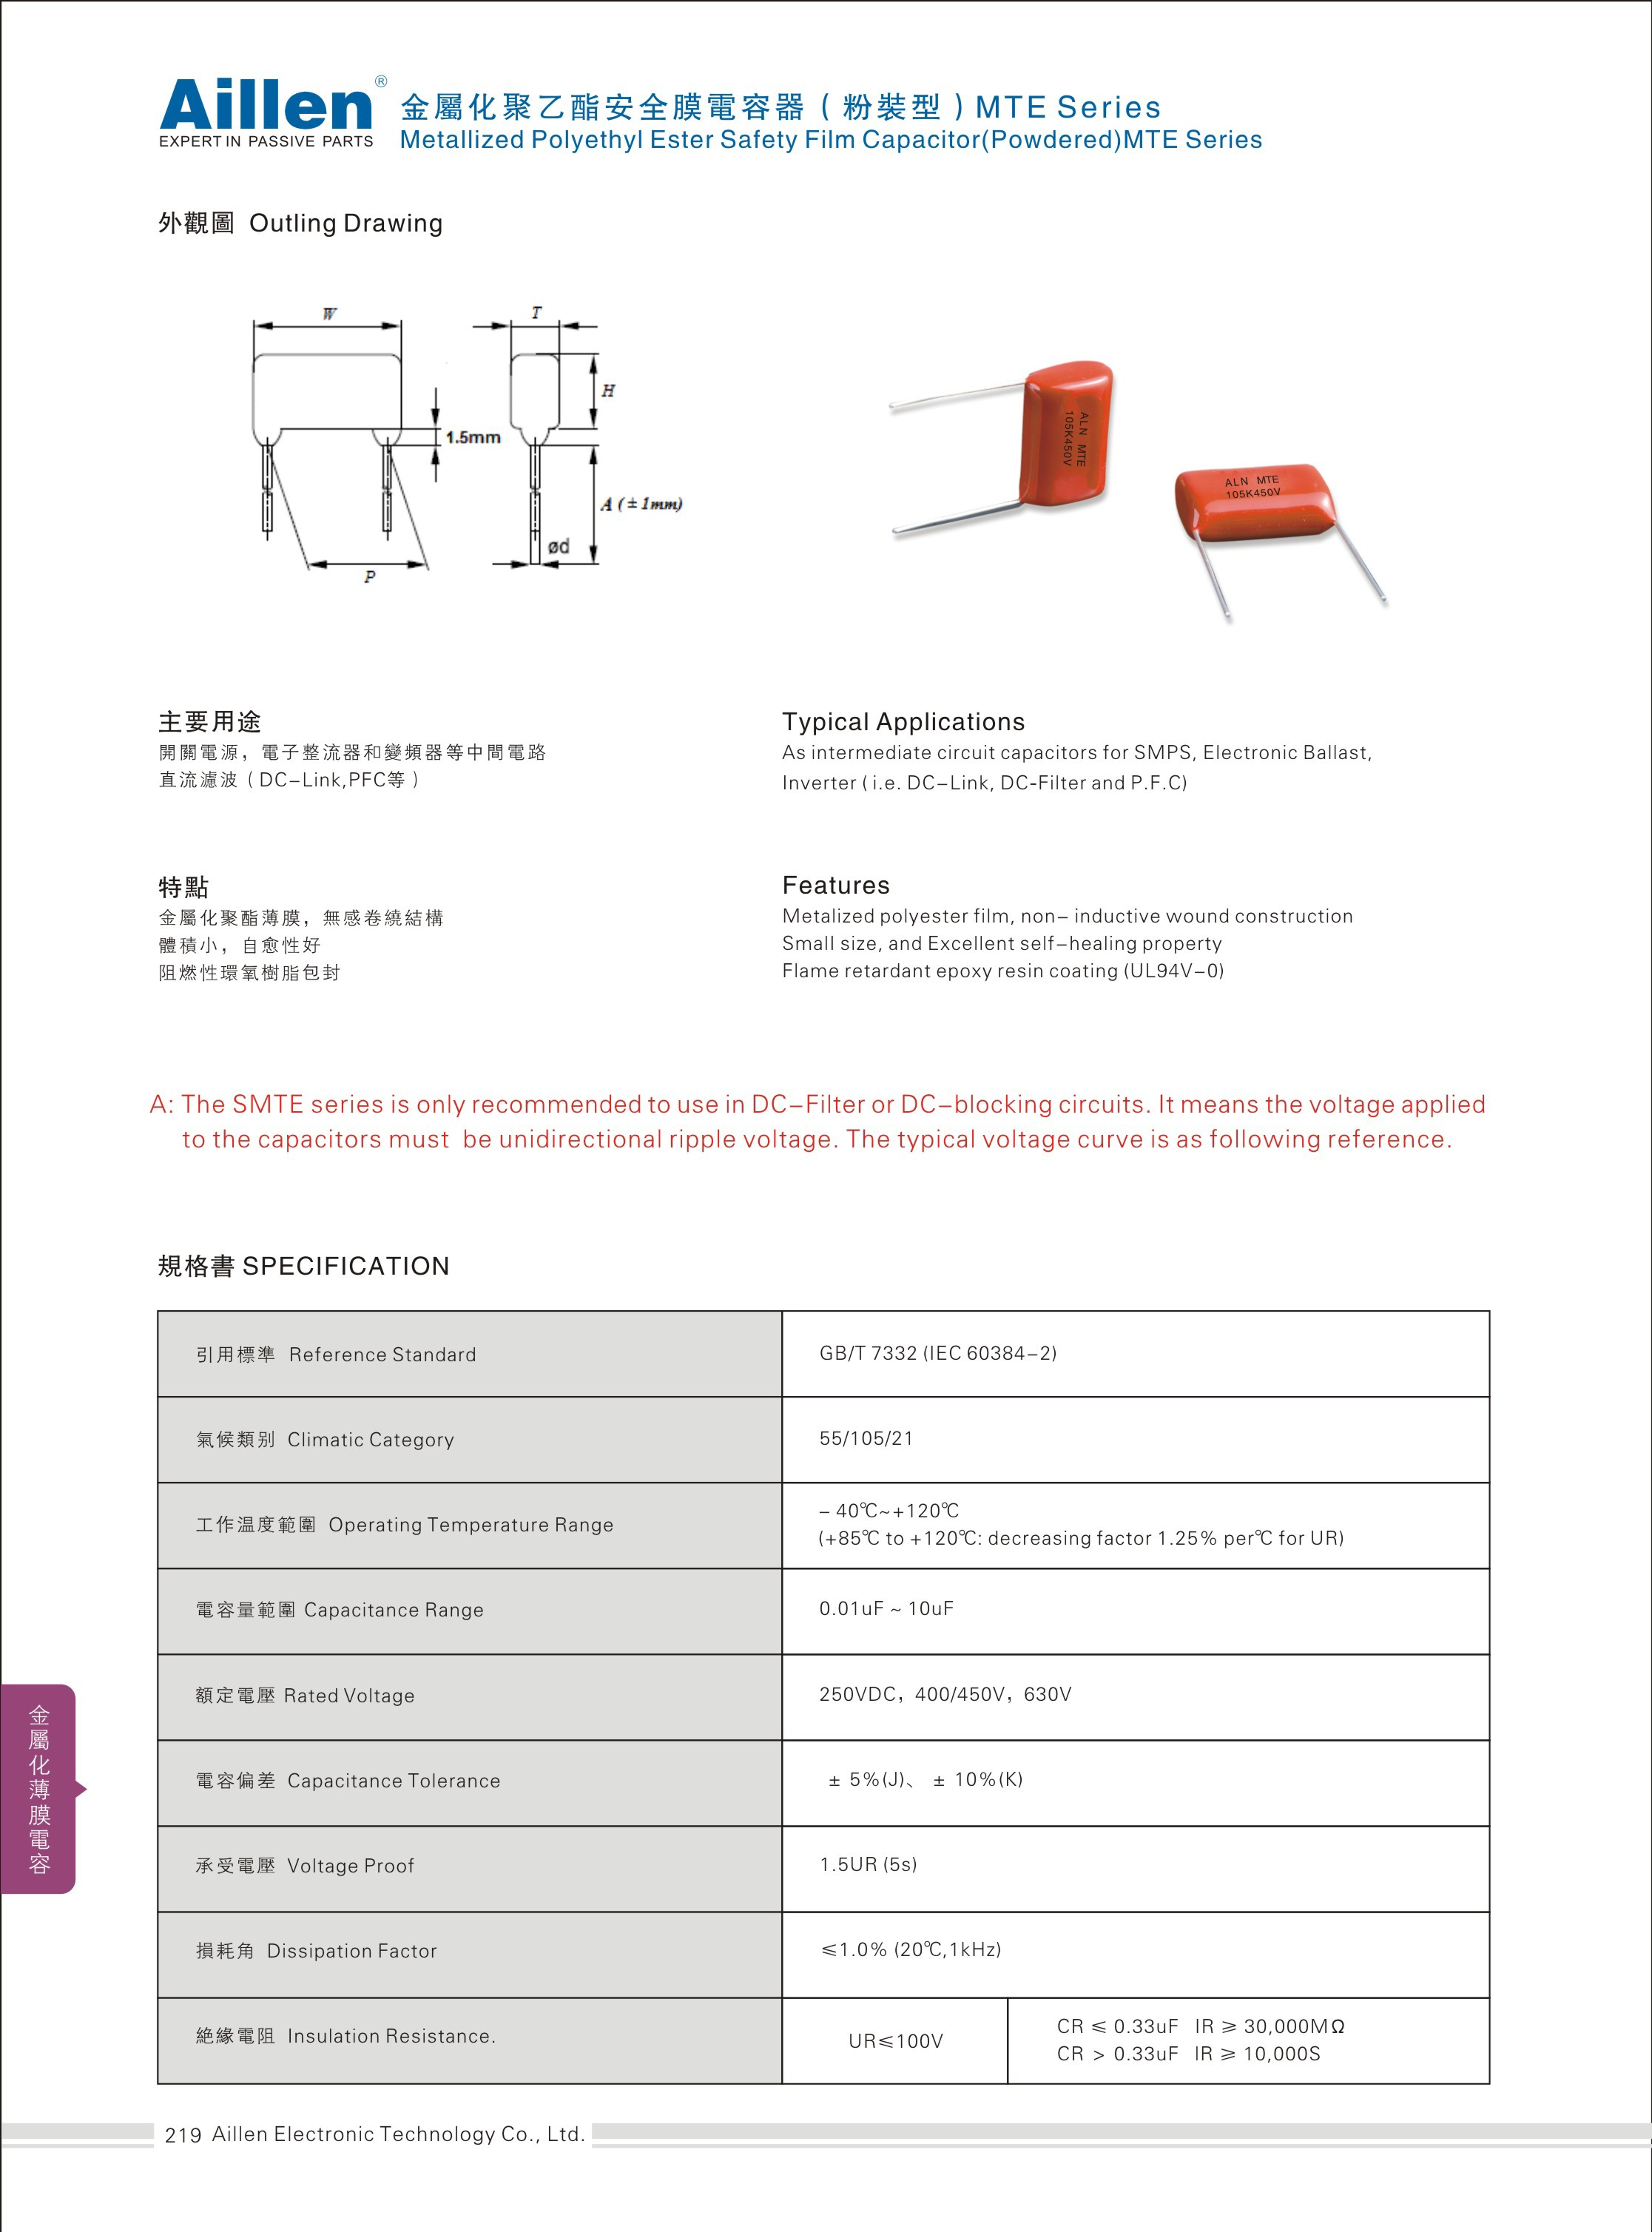 Metallized polyester safety film capacitor(Powdered)MTE series